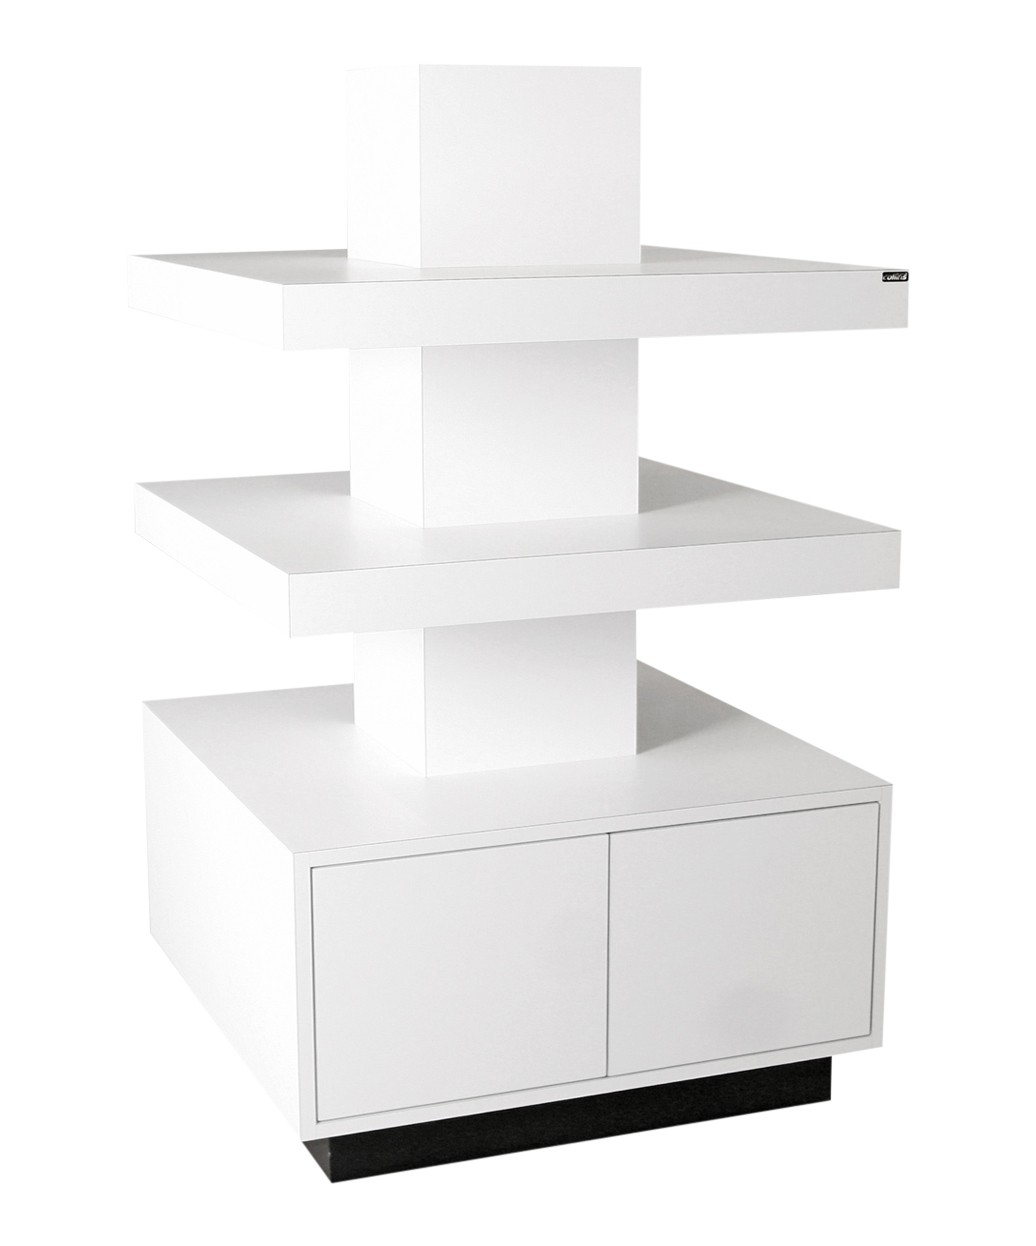 Collins 6647 Zada Stacked Retail Display w/ Lights